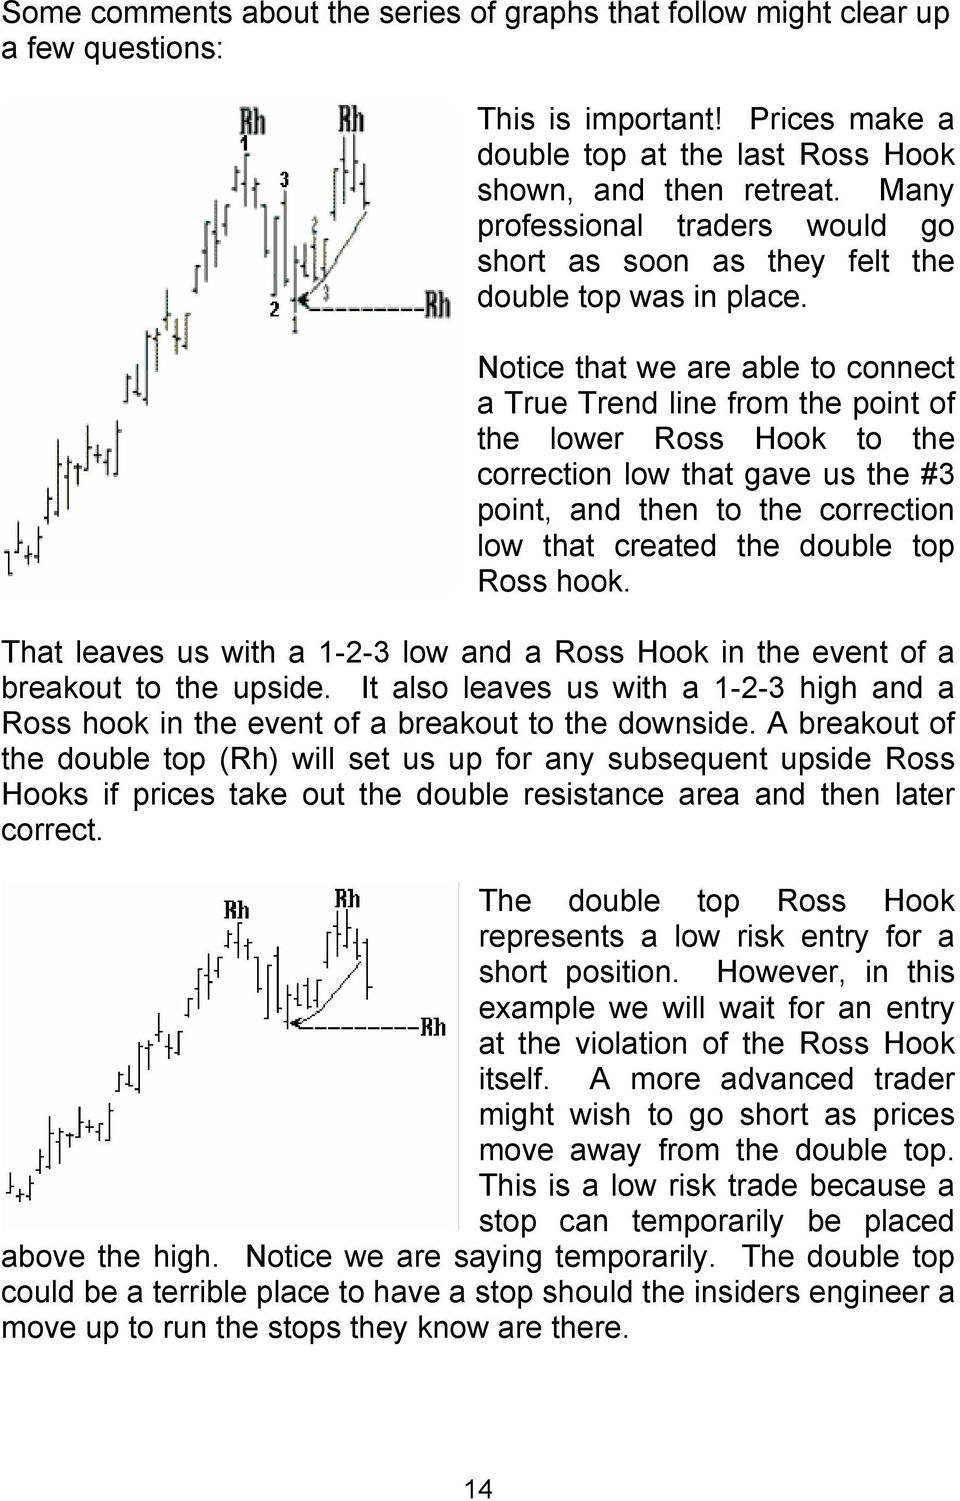 Notice that we are able to connect a True Trend line from the point of the lower Ross Hook to the correction low that gave us the #3 point, and then to the correction low that created the double top